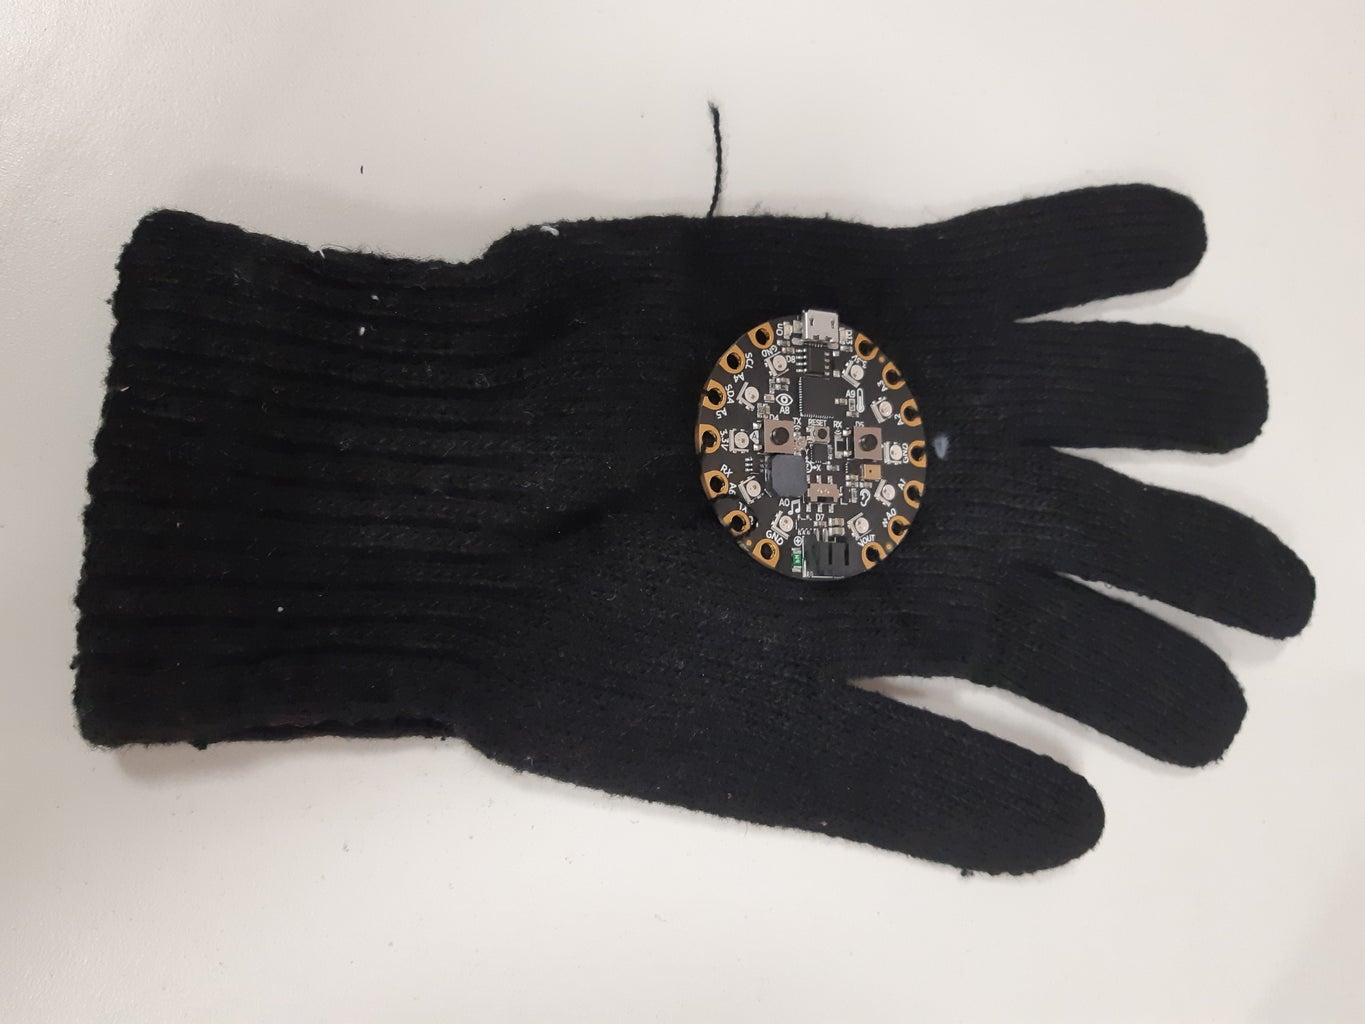 Attaching Your CPX to Your Glove